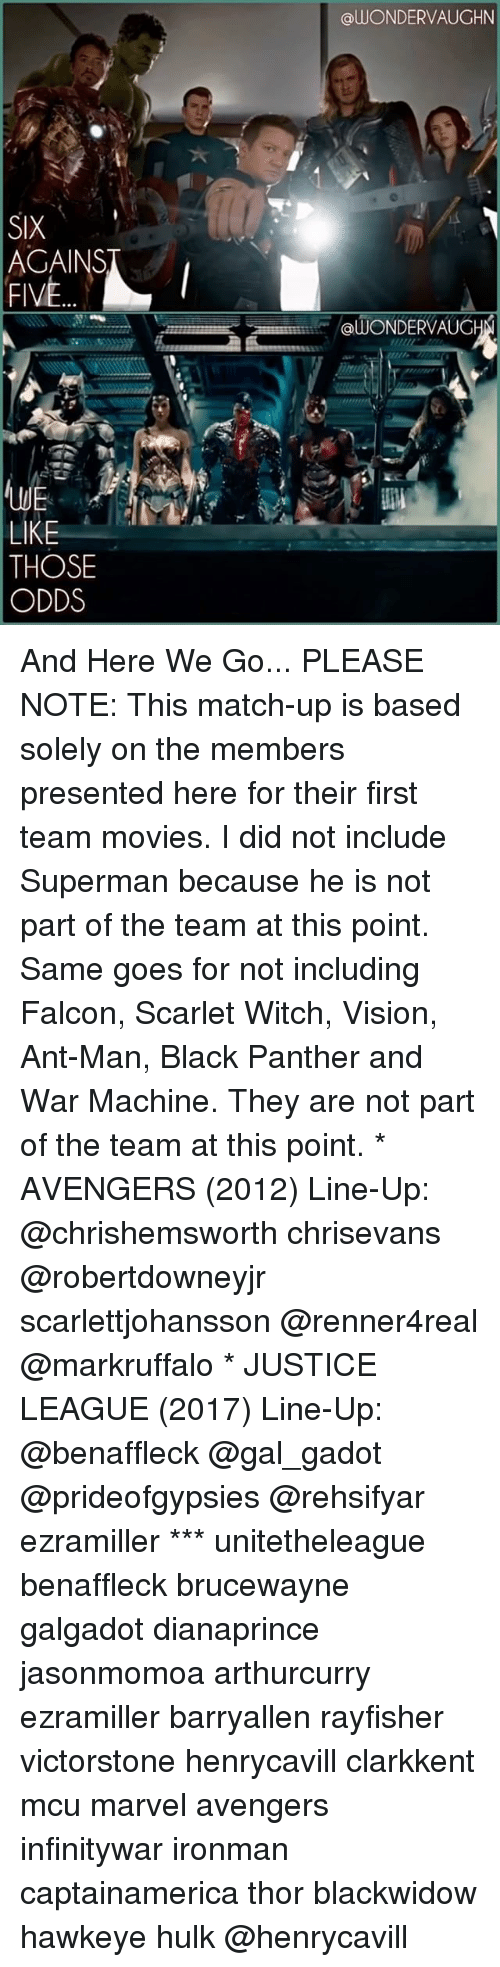 War Machine: SIX  FIVE  LIKE  THOSE  ODDS  alUONDERVAUGHN  @WONDER VAUG And Here We Go... PLEASE NOTE: This match-up is based solely on the members presented here for their first team movies. I did not include Superman because he is not part of the team at this point. Same goes for not including Falcon, Scarlet Witch, Vision, Ant-Man, Black Panther and War Machine. They are not part of the team at this point. * AVENGERS (2012) Line-Up: @chrishemsworth chrisevans @robertdowneyjr scarlettjohansson @renner4real @markruffalo * JUSTICE LEAGUE (2017) Line-Up: @benaffleck @gal_gadot @prideofgypsies @rehsifyar ezramiller *** unitetheleague benaffleck brucewayne galgadot dianaprince jasonmomoa arthurcurry ezramiller barryallen rayfisher victorstone henrycavill clarkkent mcu marvel avengers infinitywar ironman captainamerica thor blackwidow hawkeye hulk @henrycavill